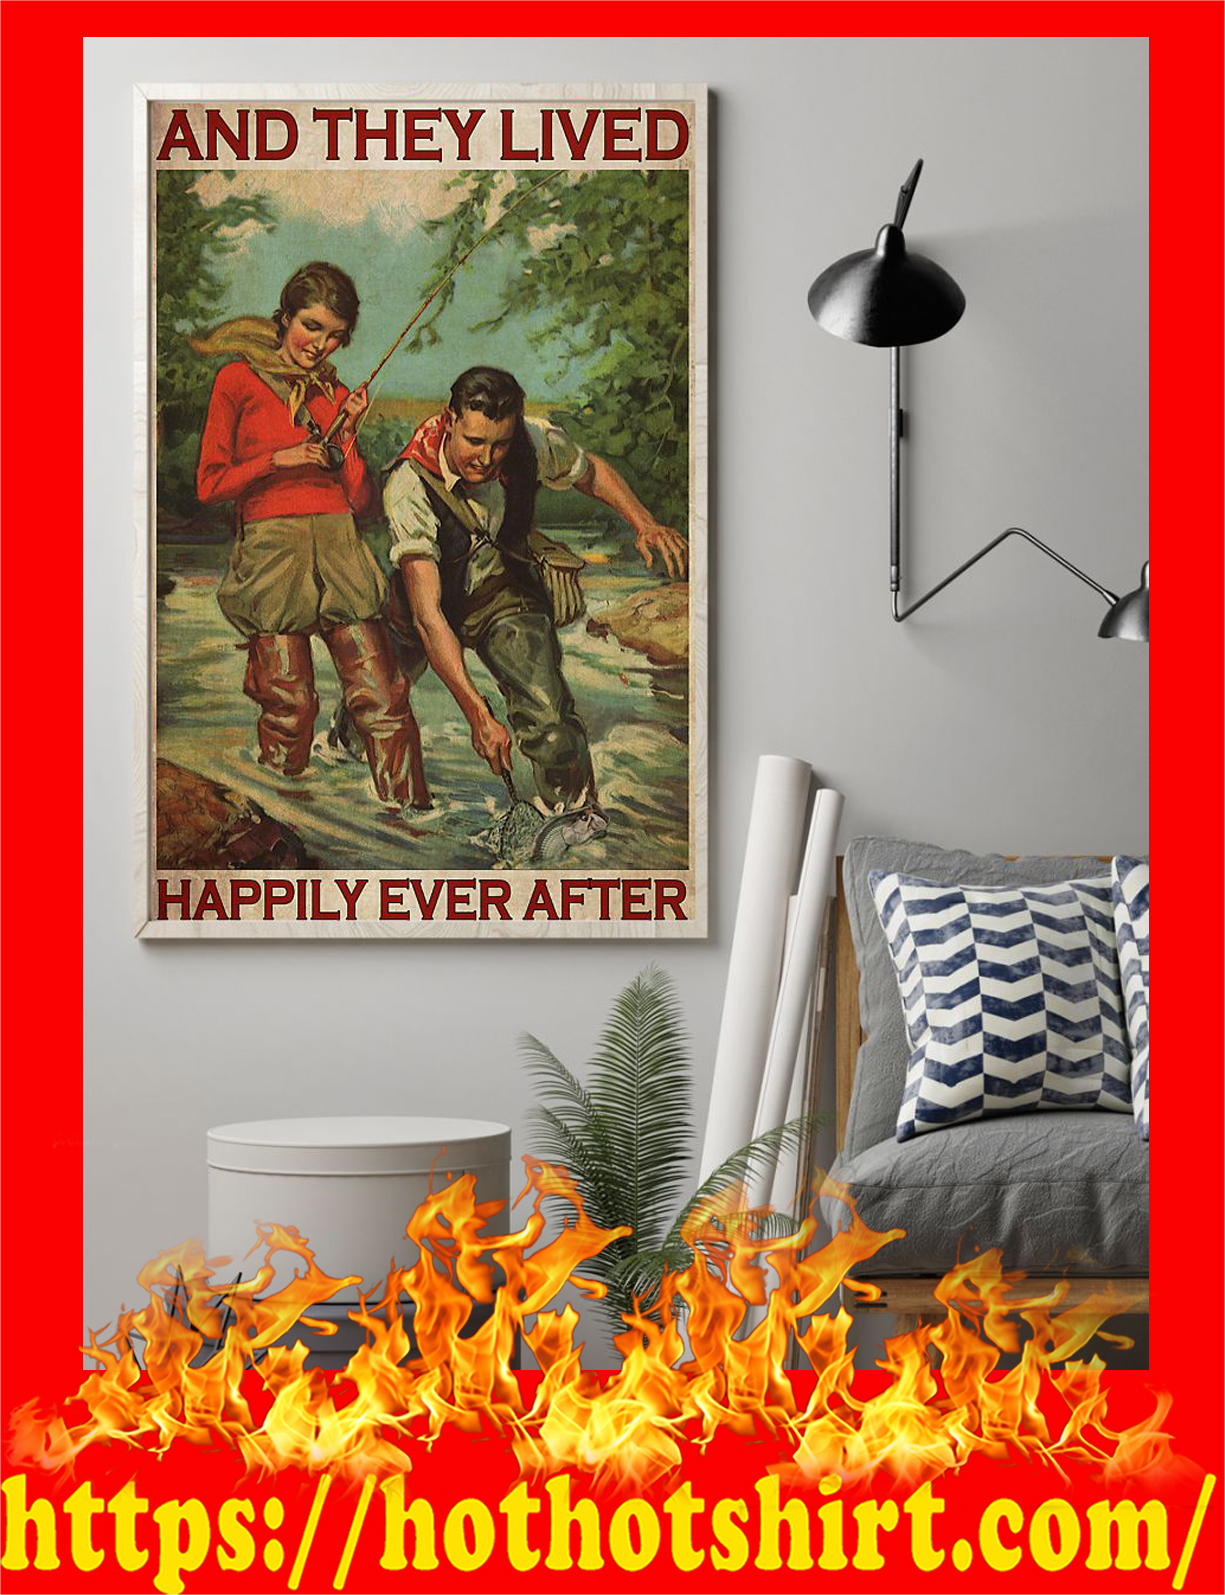 Fishing couple and they live happily ever after poster - Pic 1